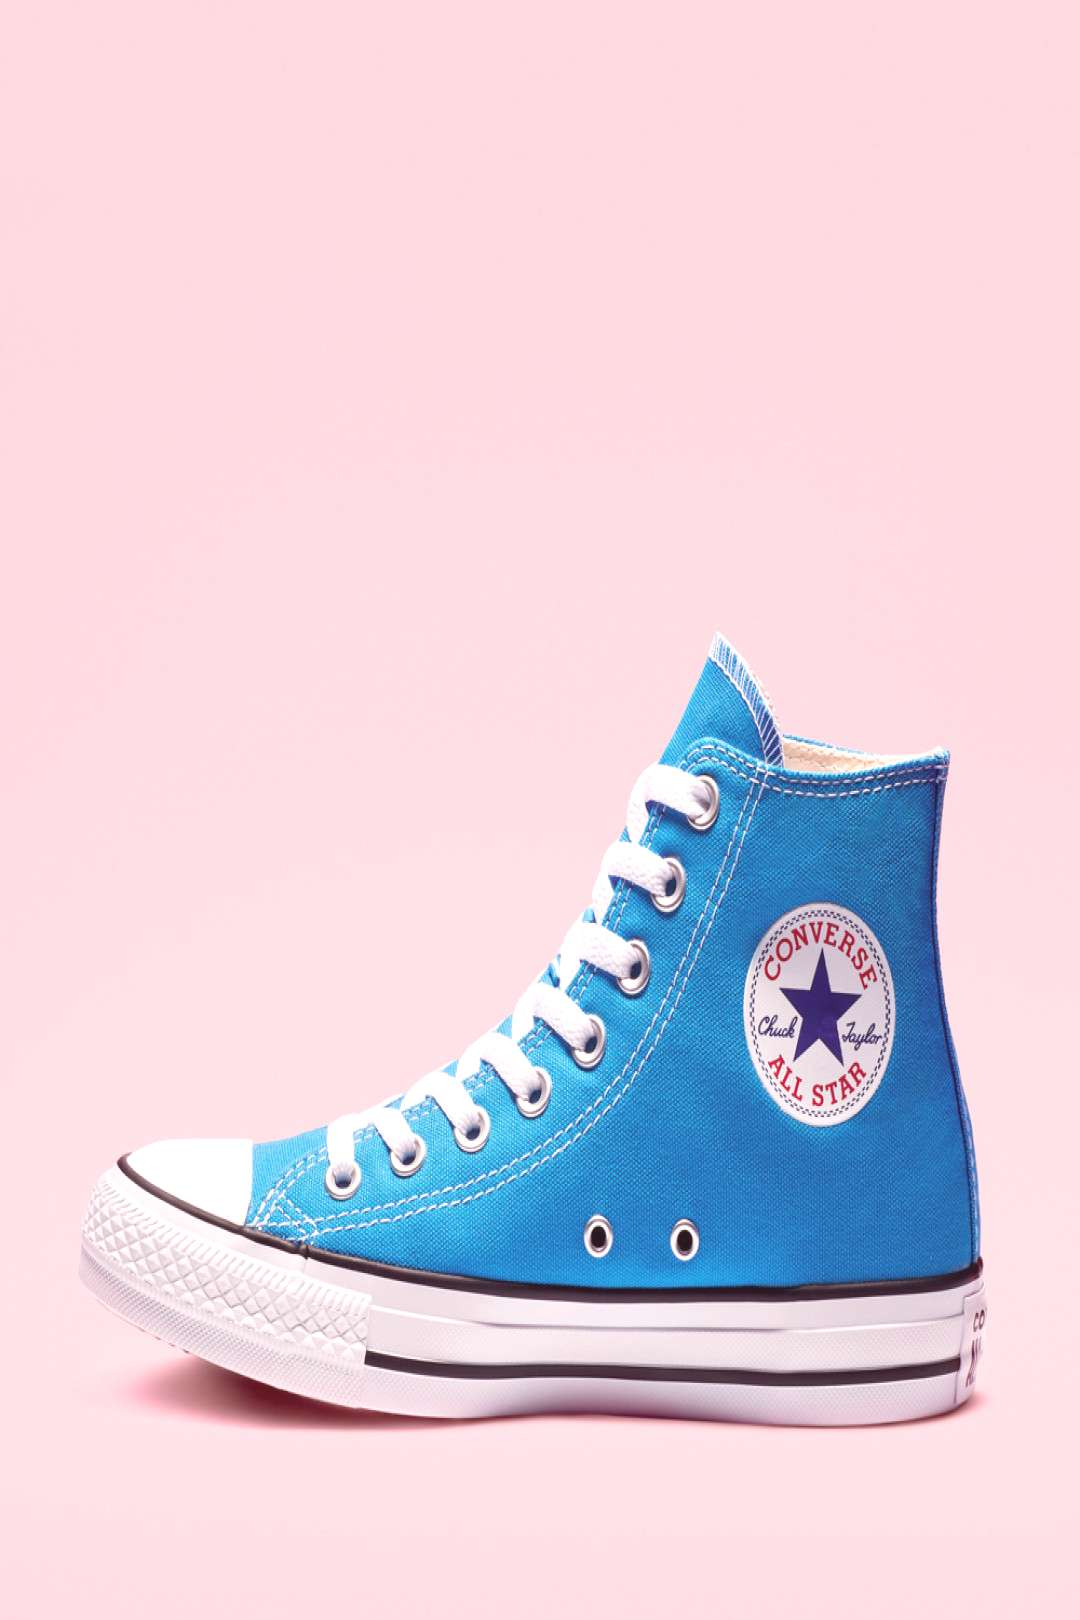 Chuck Taylors Sneakers | Up Close - New England Today